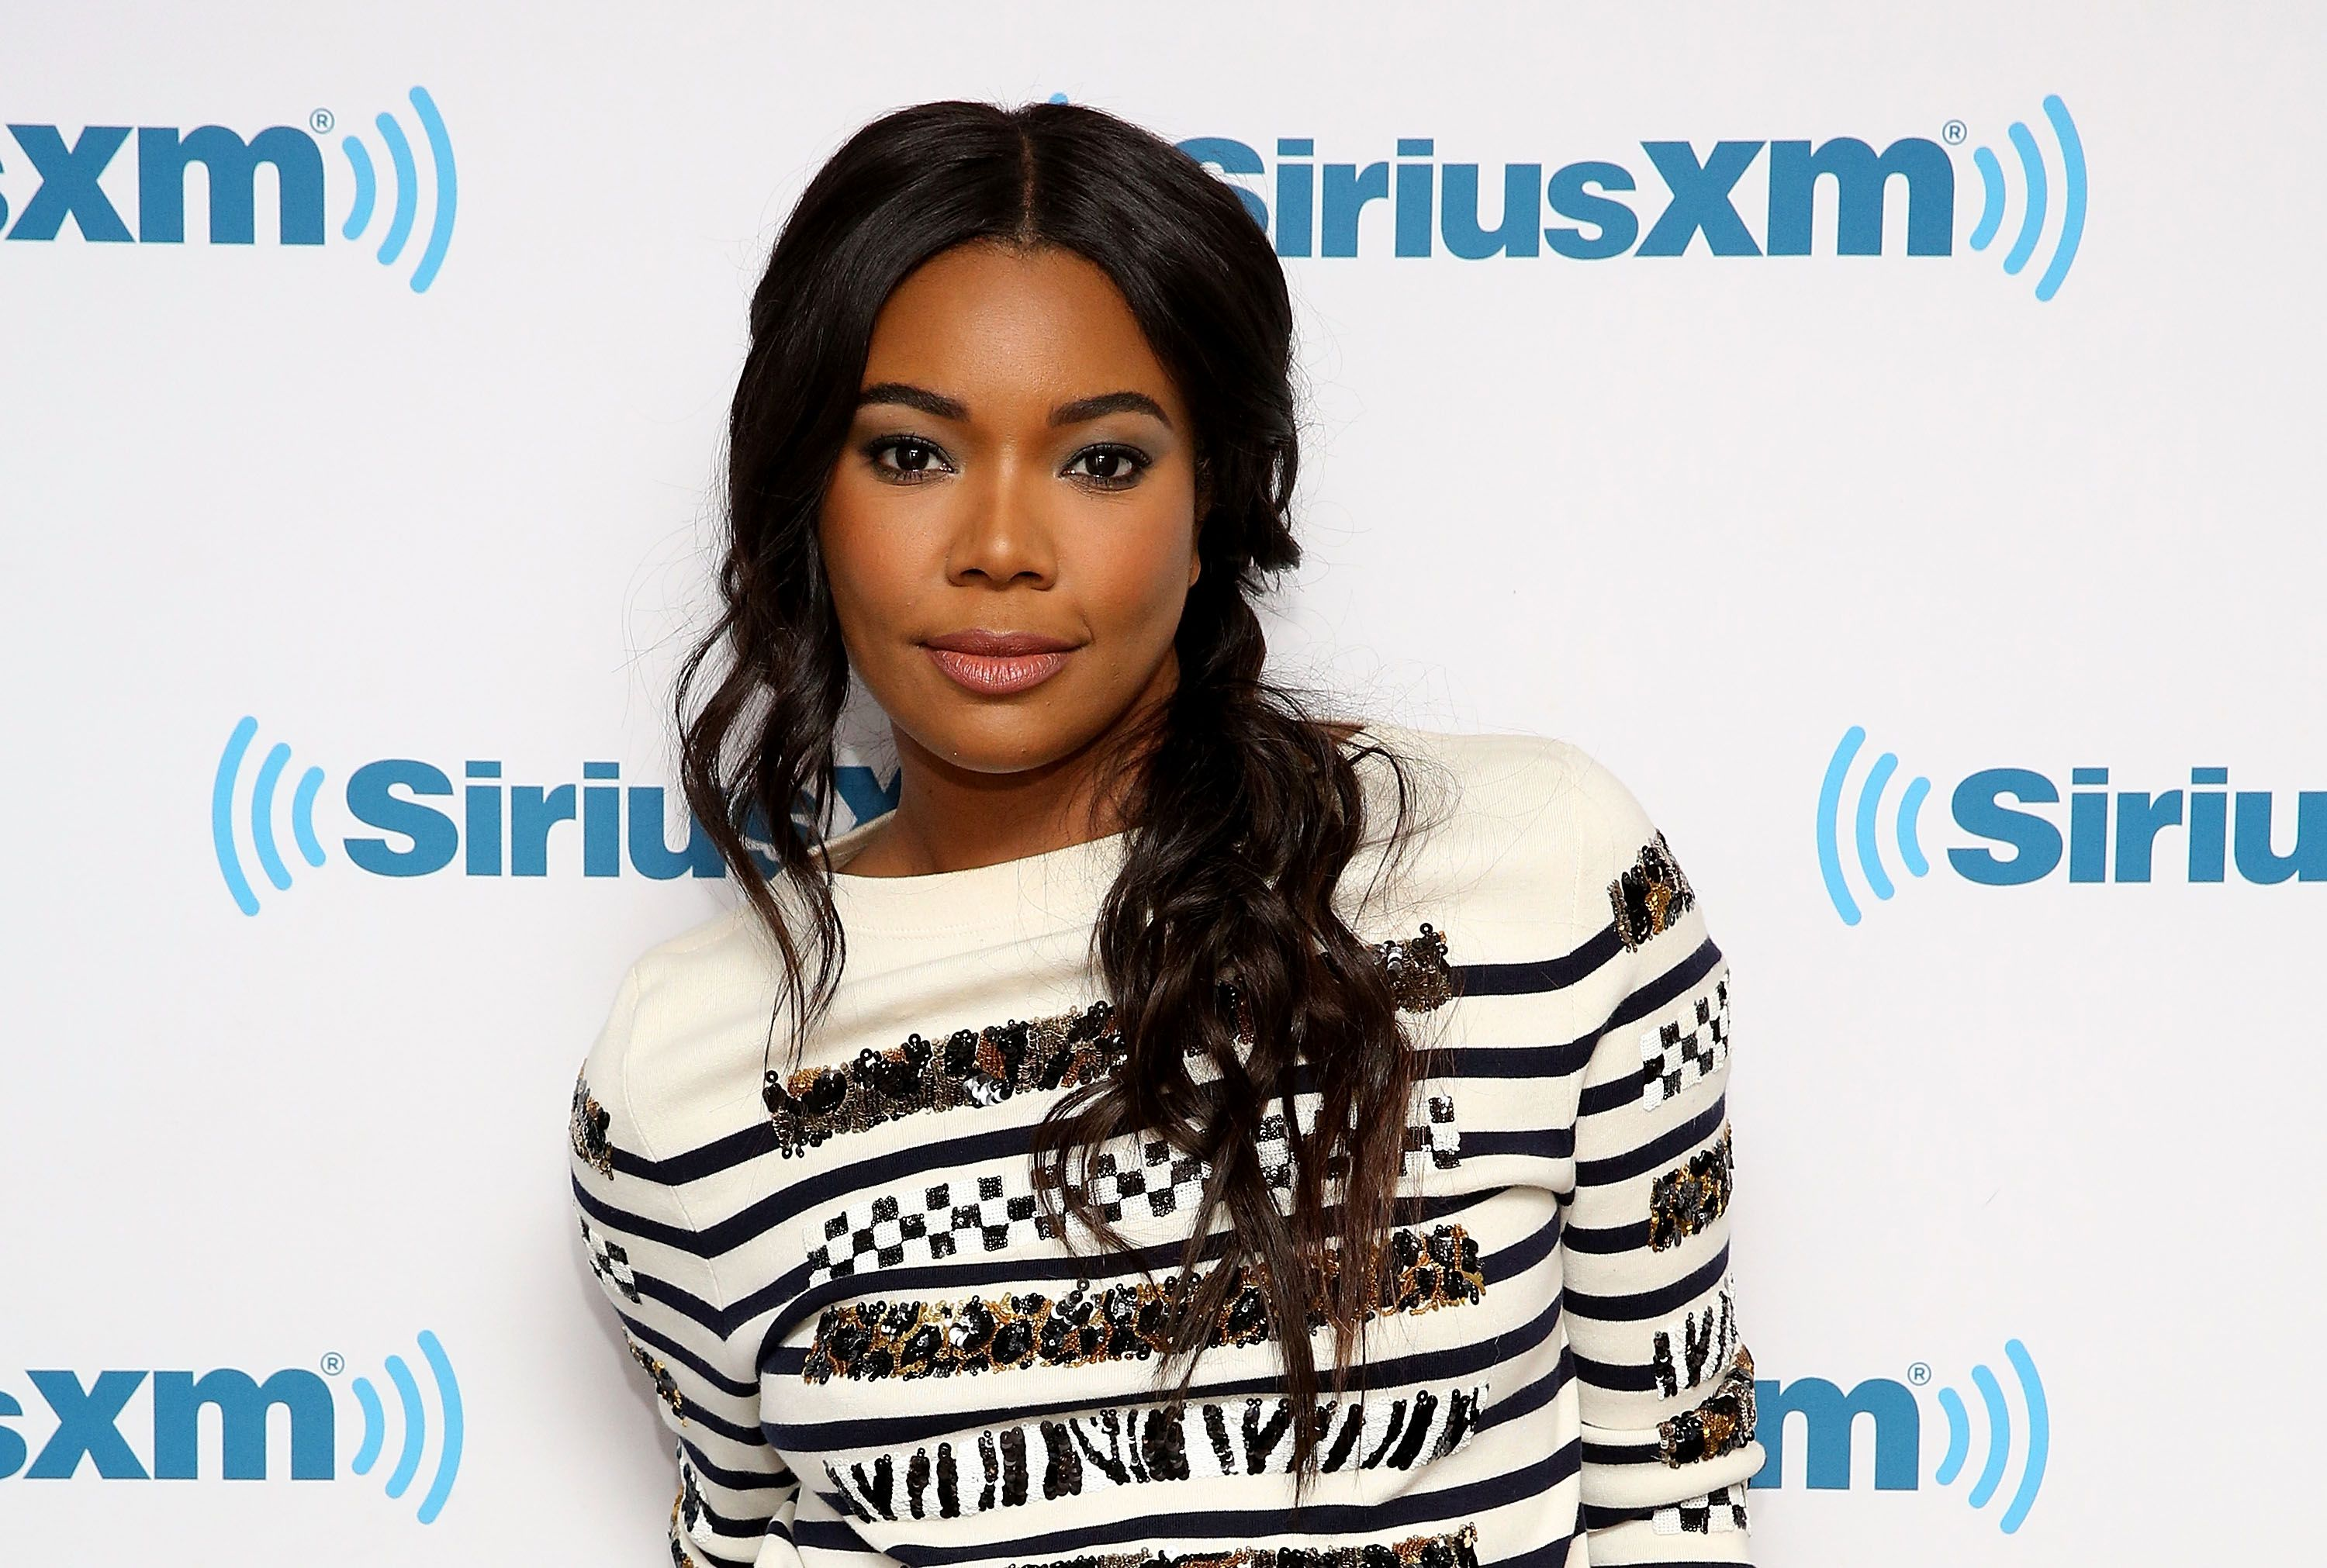 Gabrielle Union at SiriusXM Studio on Nov. 1, 2016 in New York City.   Source: Getty Images